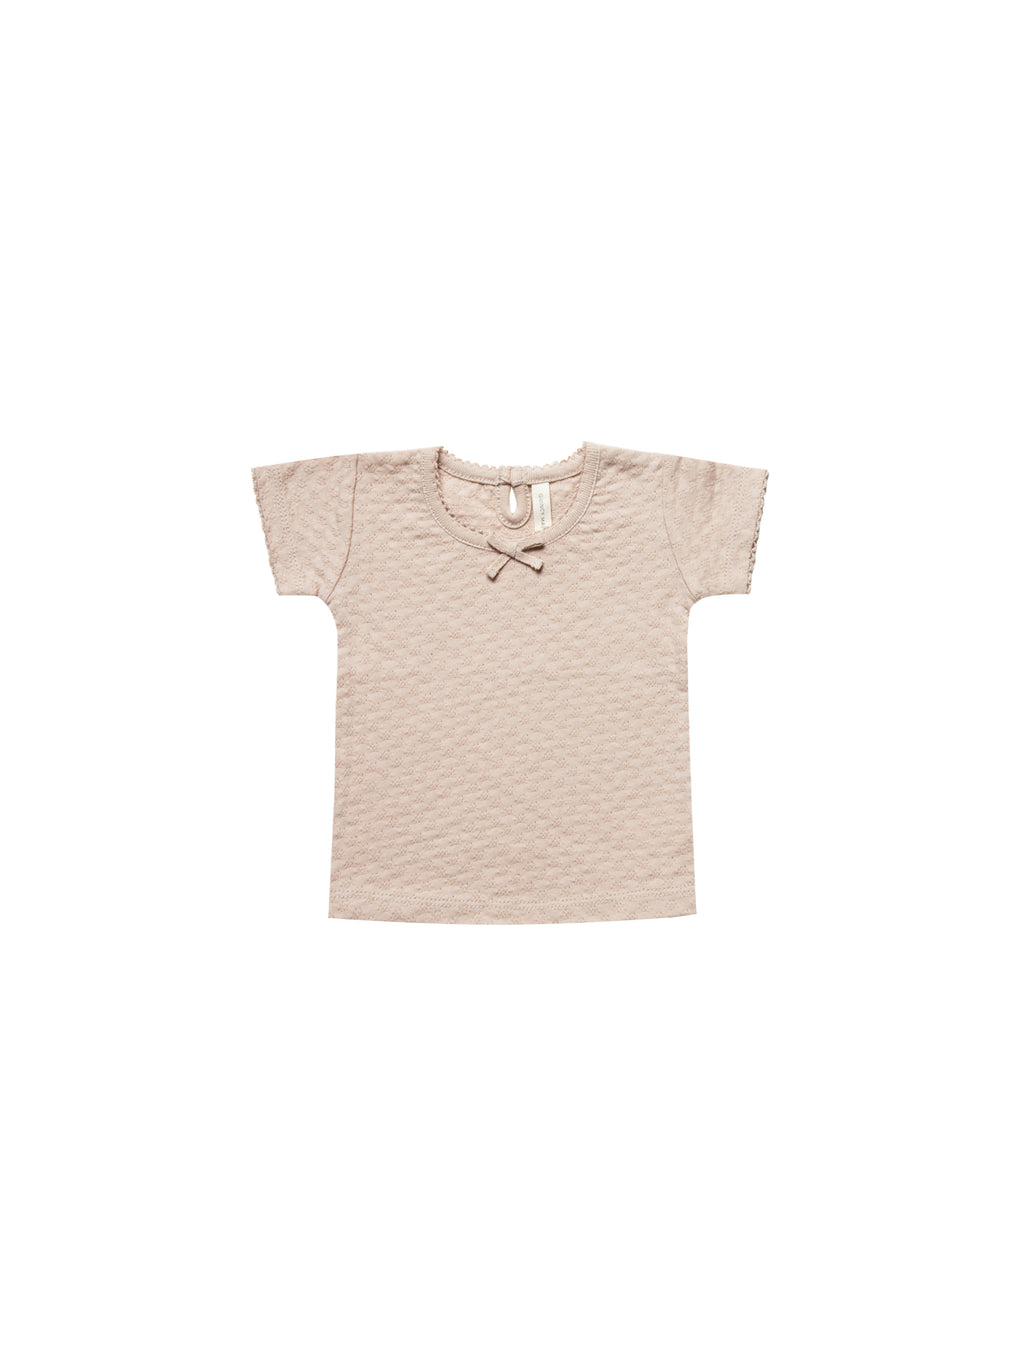 Quincy Mae Pointelle Tee - Rose